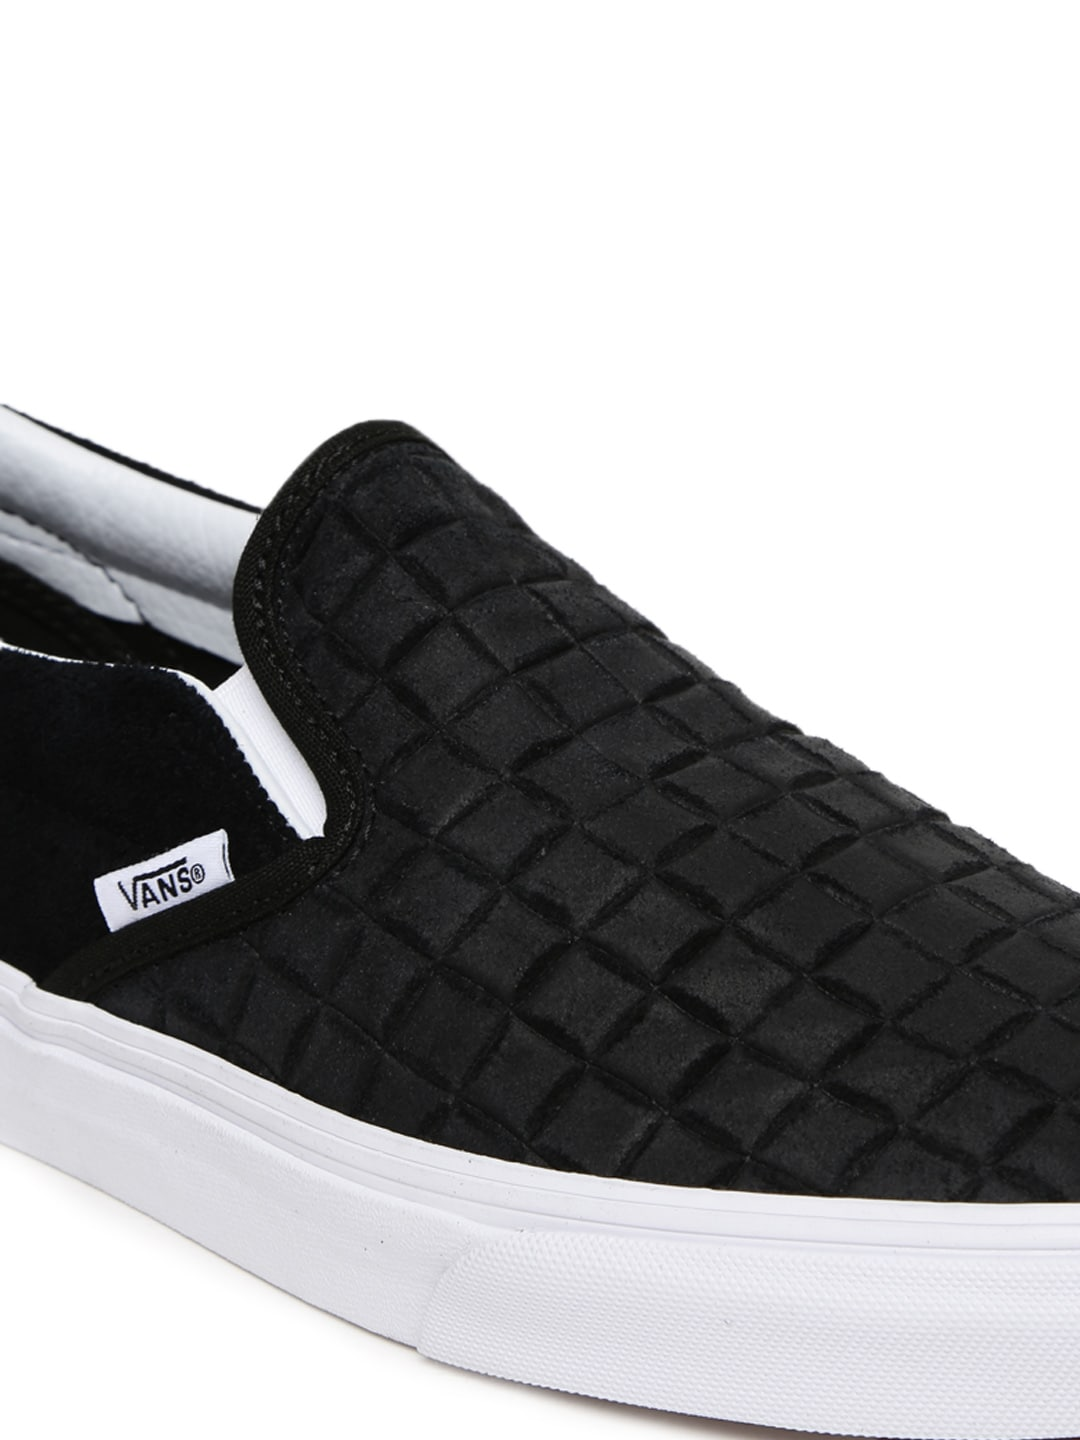 vans skate shoes wikipedia